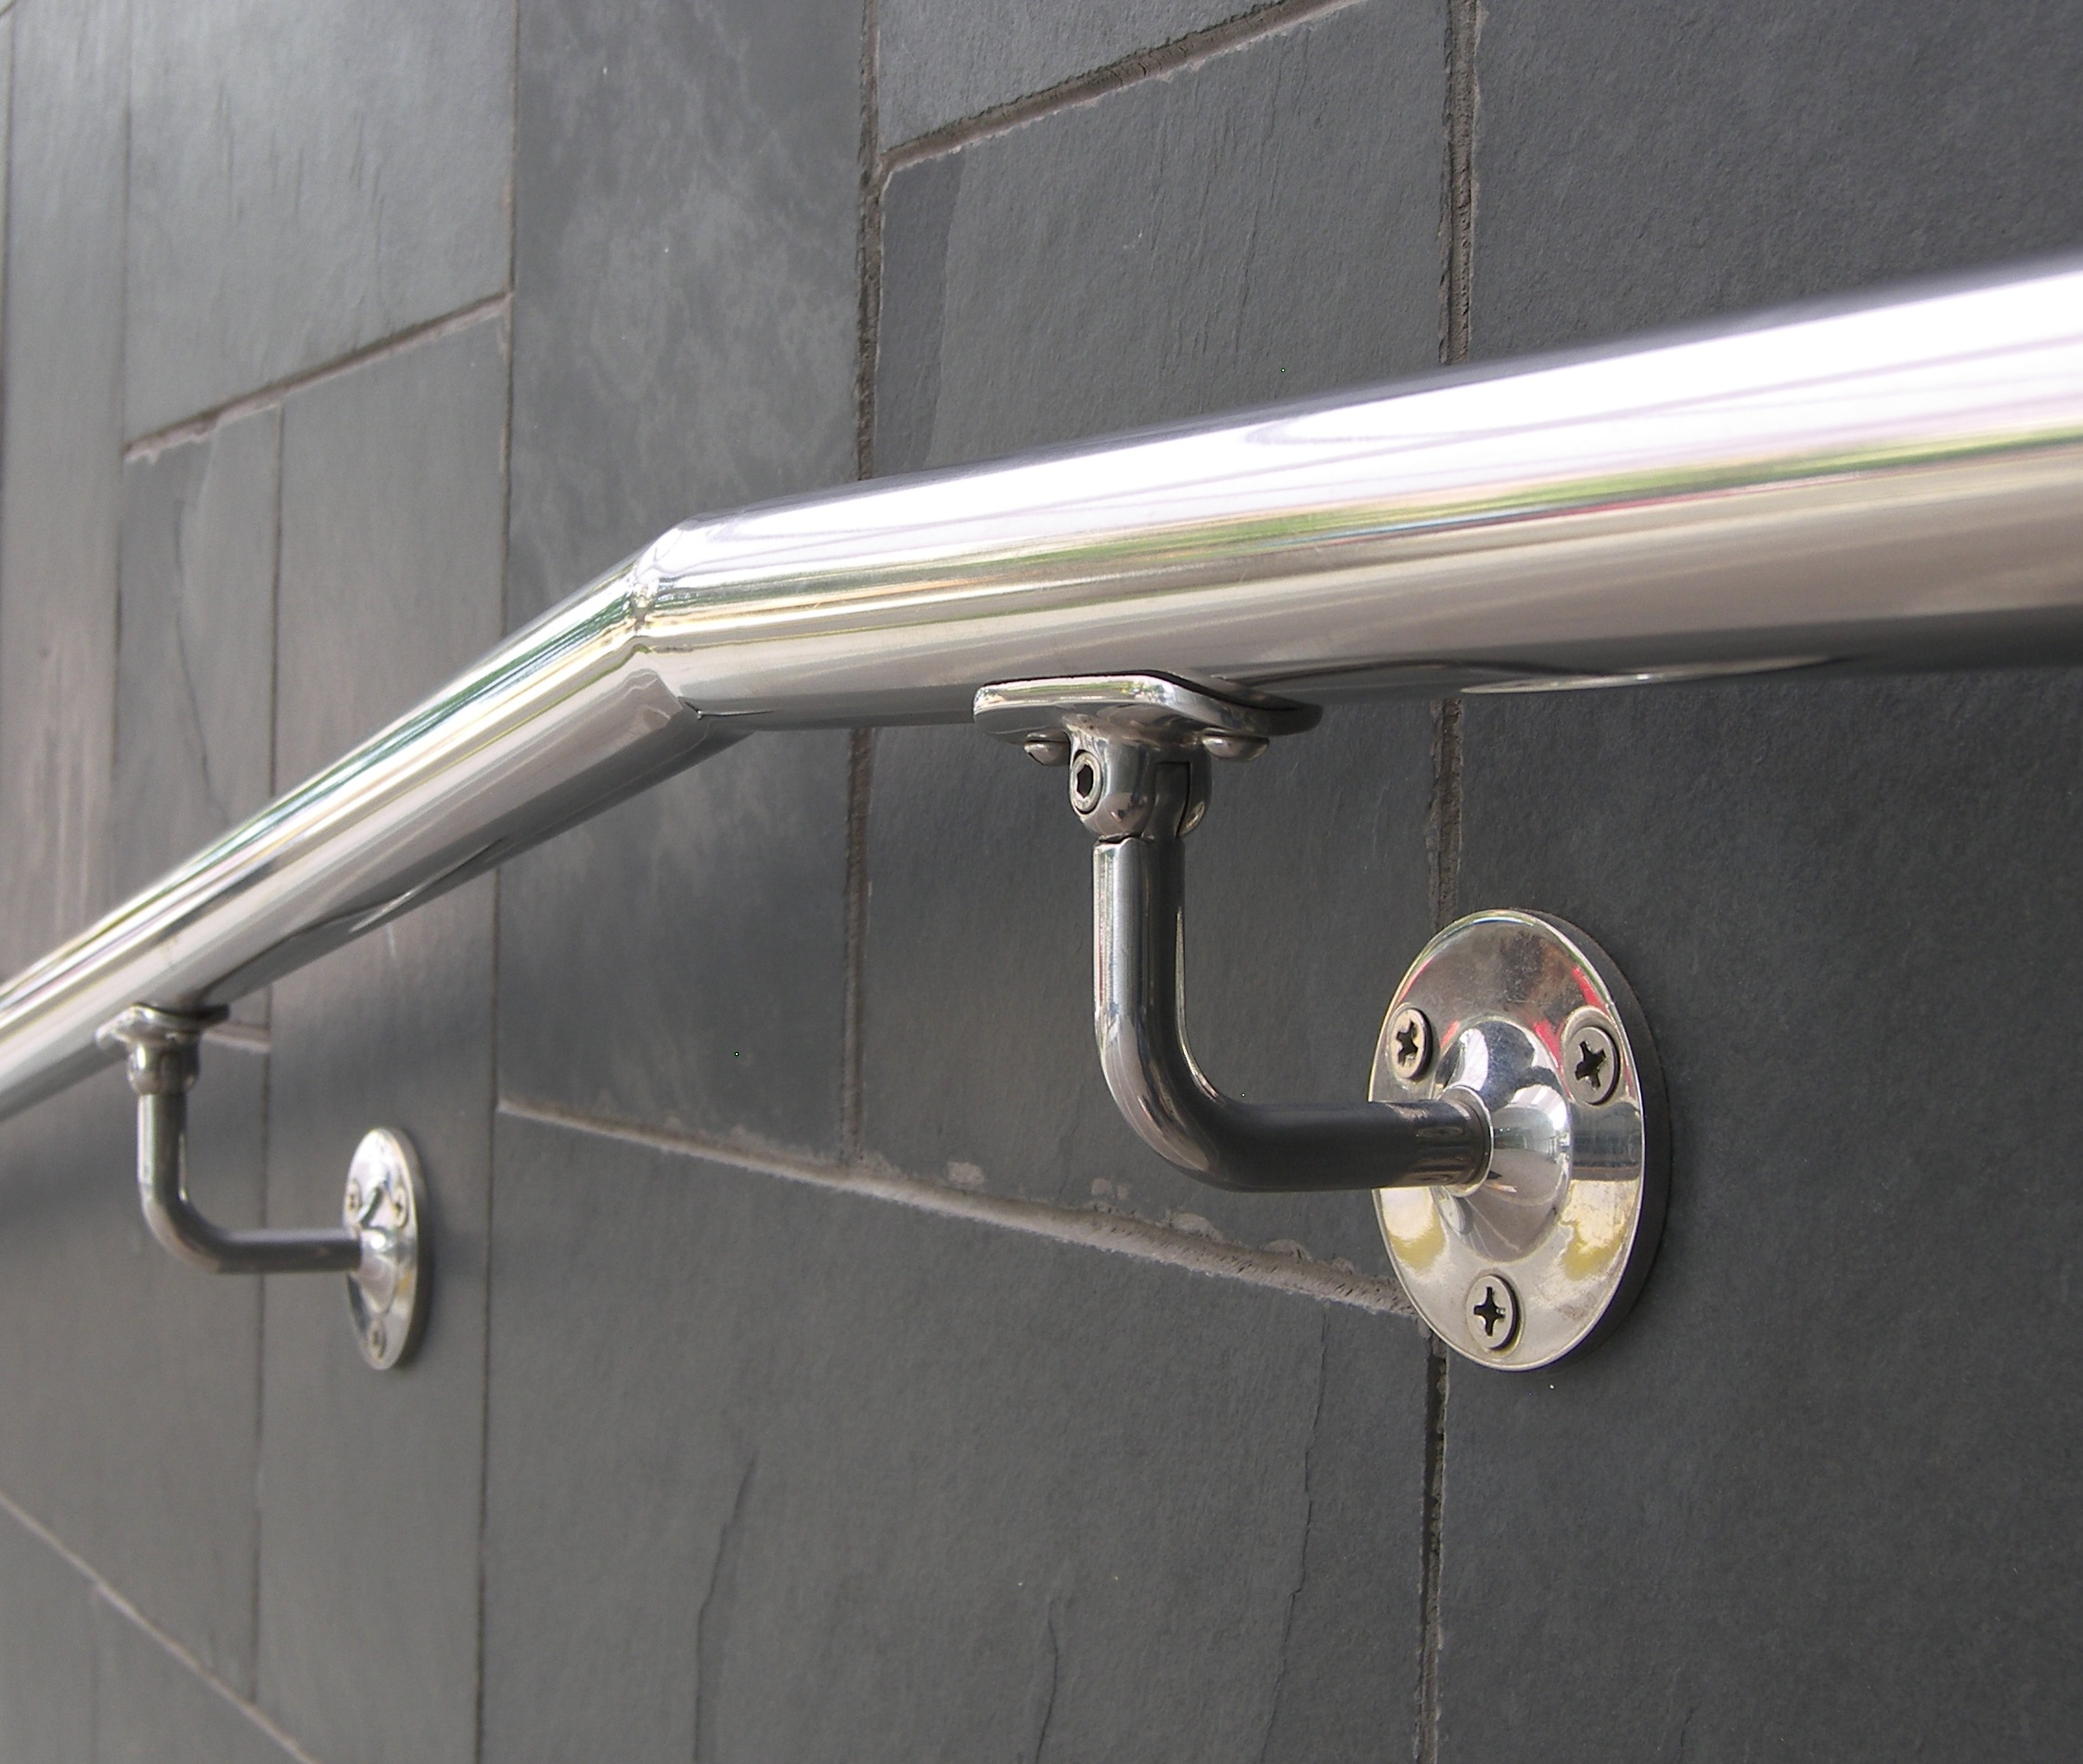 Handrail Fittings for Wall